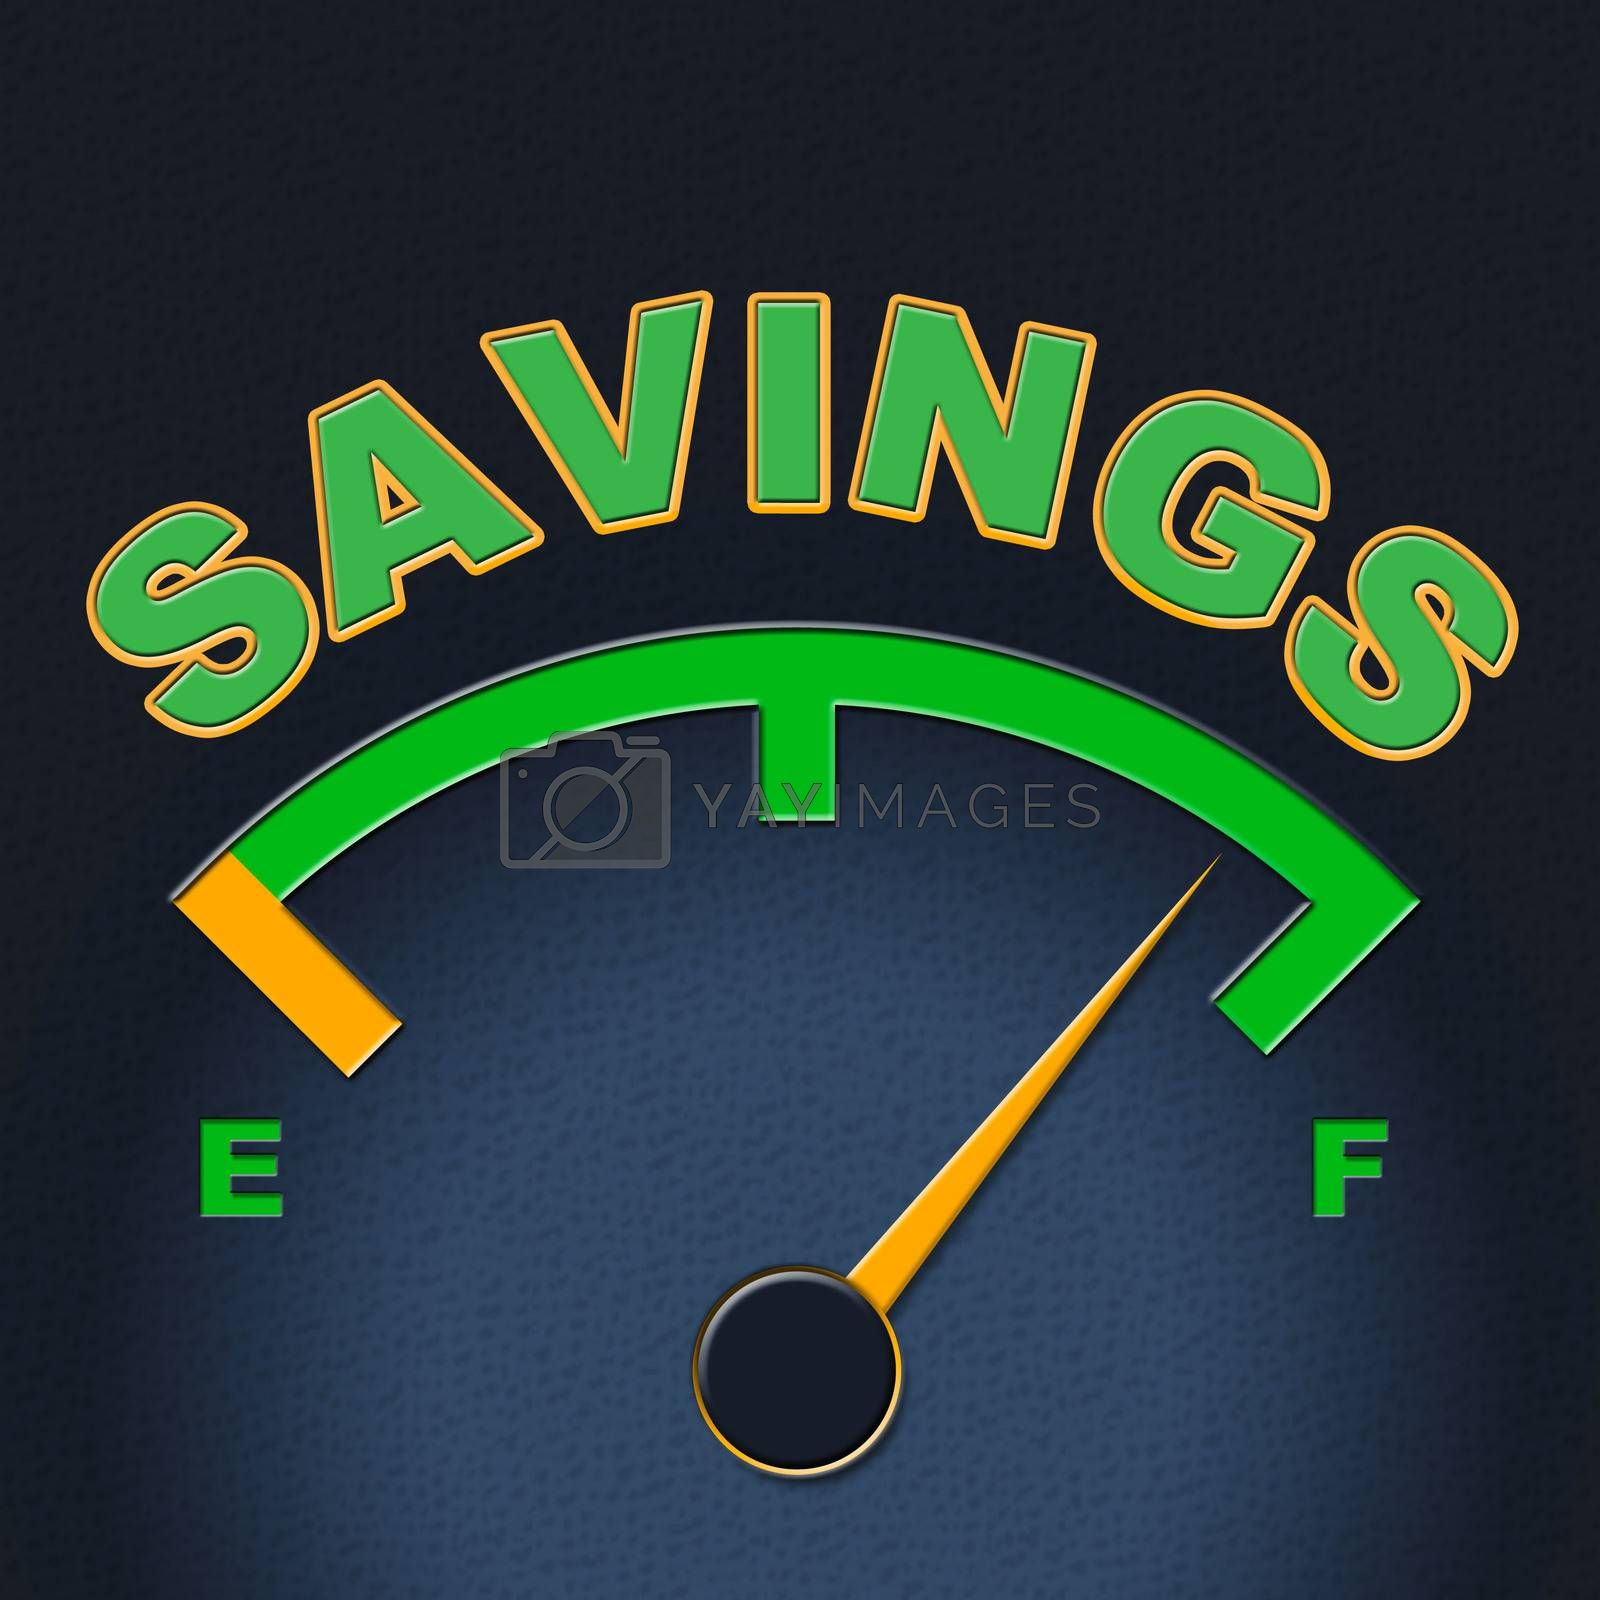 Savings Gauge Indicates Invest Monetary And Cash by stuartmiles